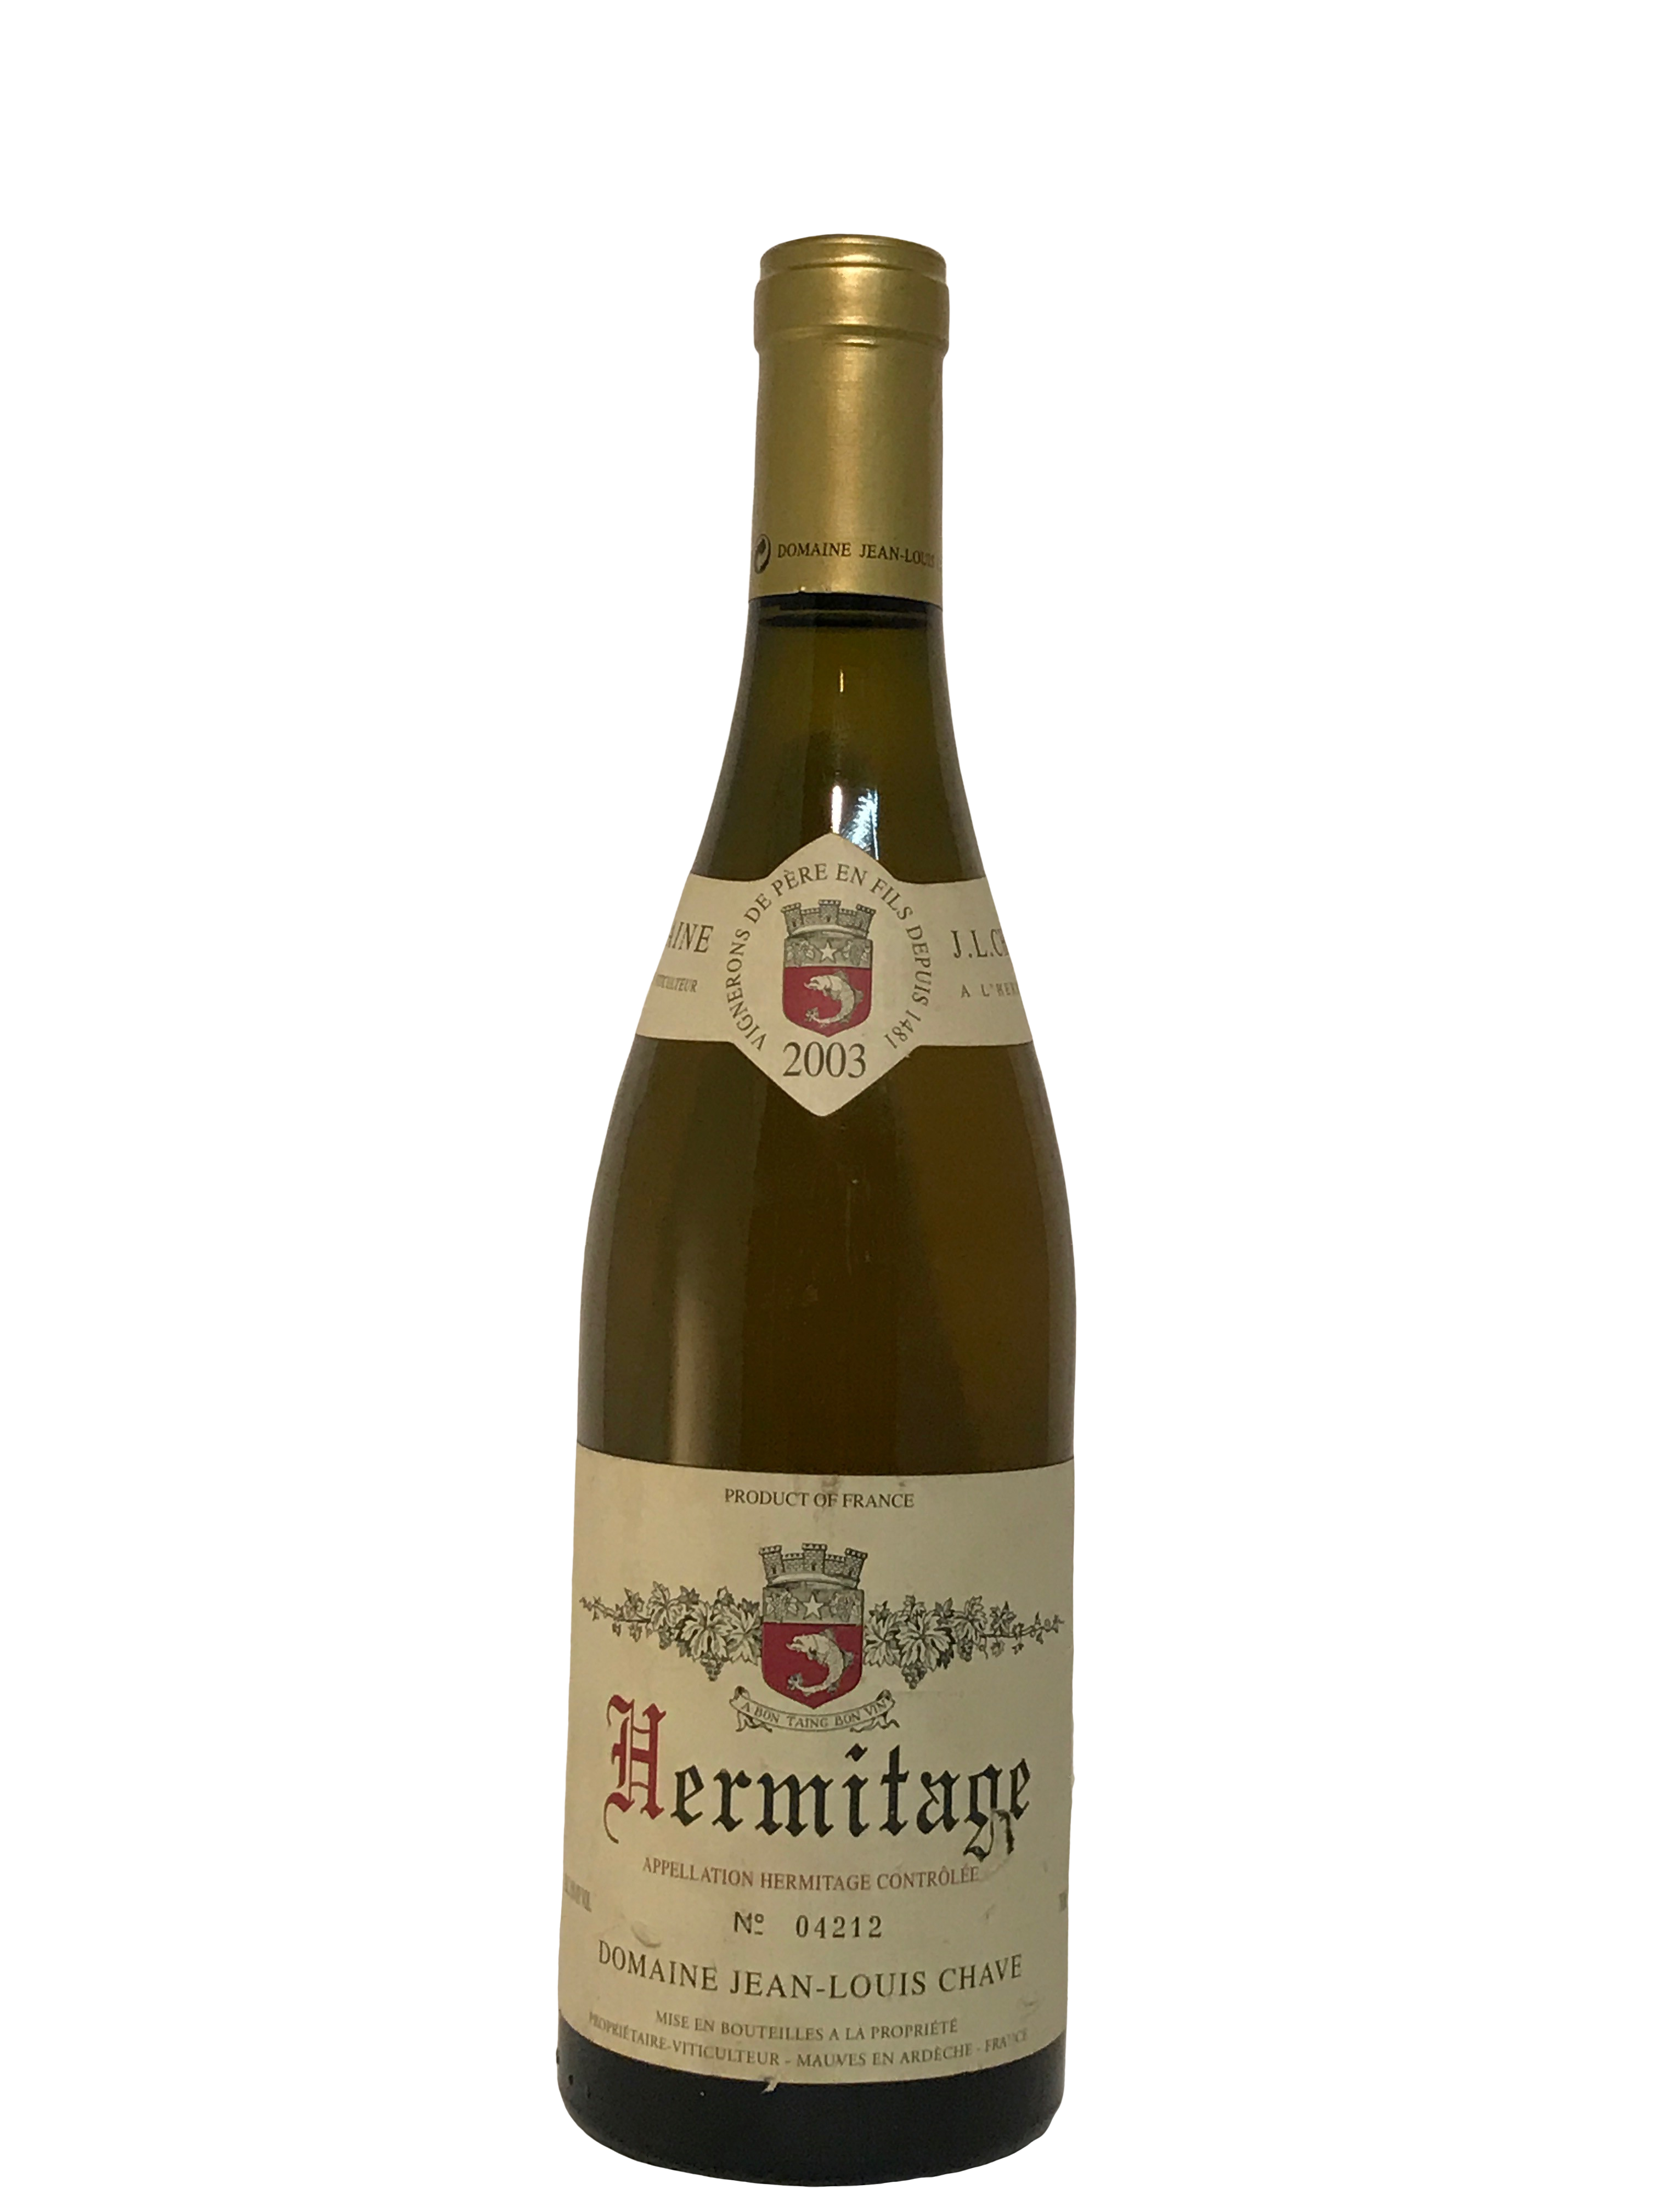 Domaine Jean-Louis Chave Blanc – Hermitage 2003